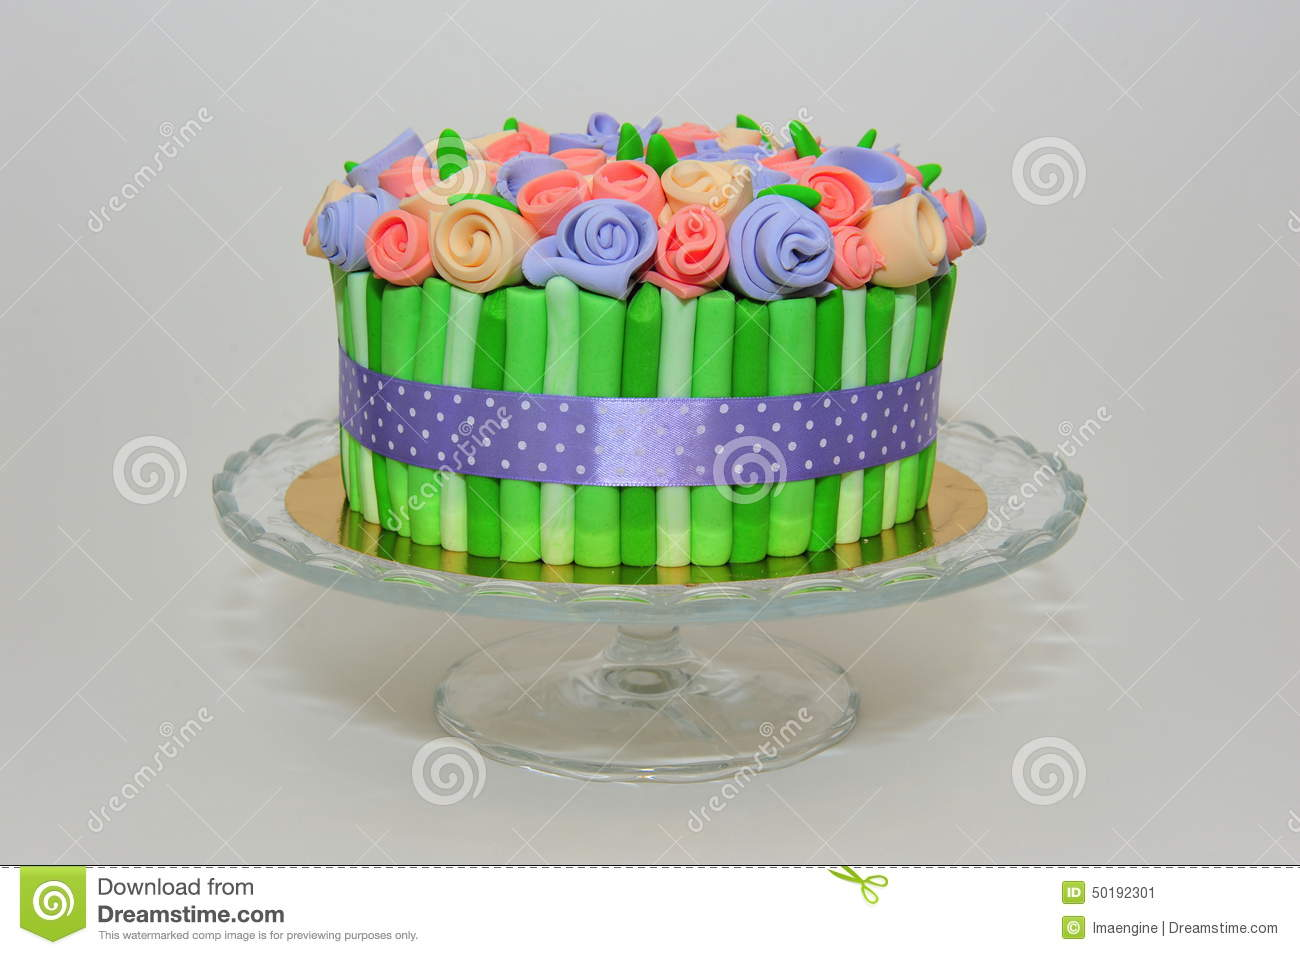 Roses bouquet cake on crystal plate stock image image of roses bouquet cake on crystal plate izmirmasajfo